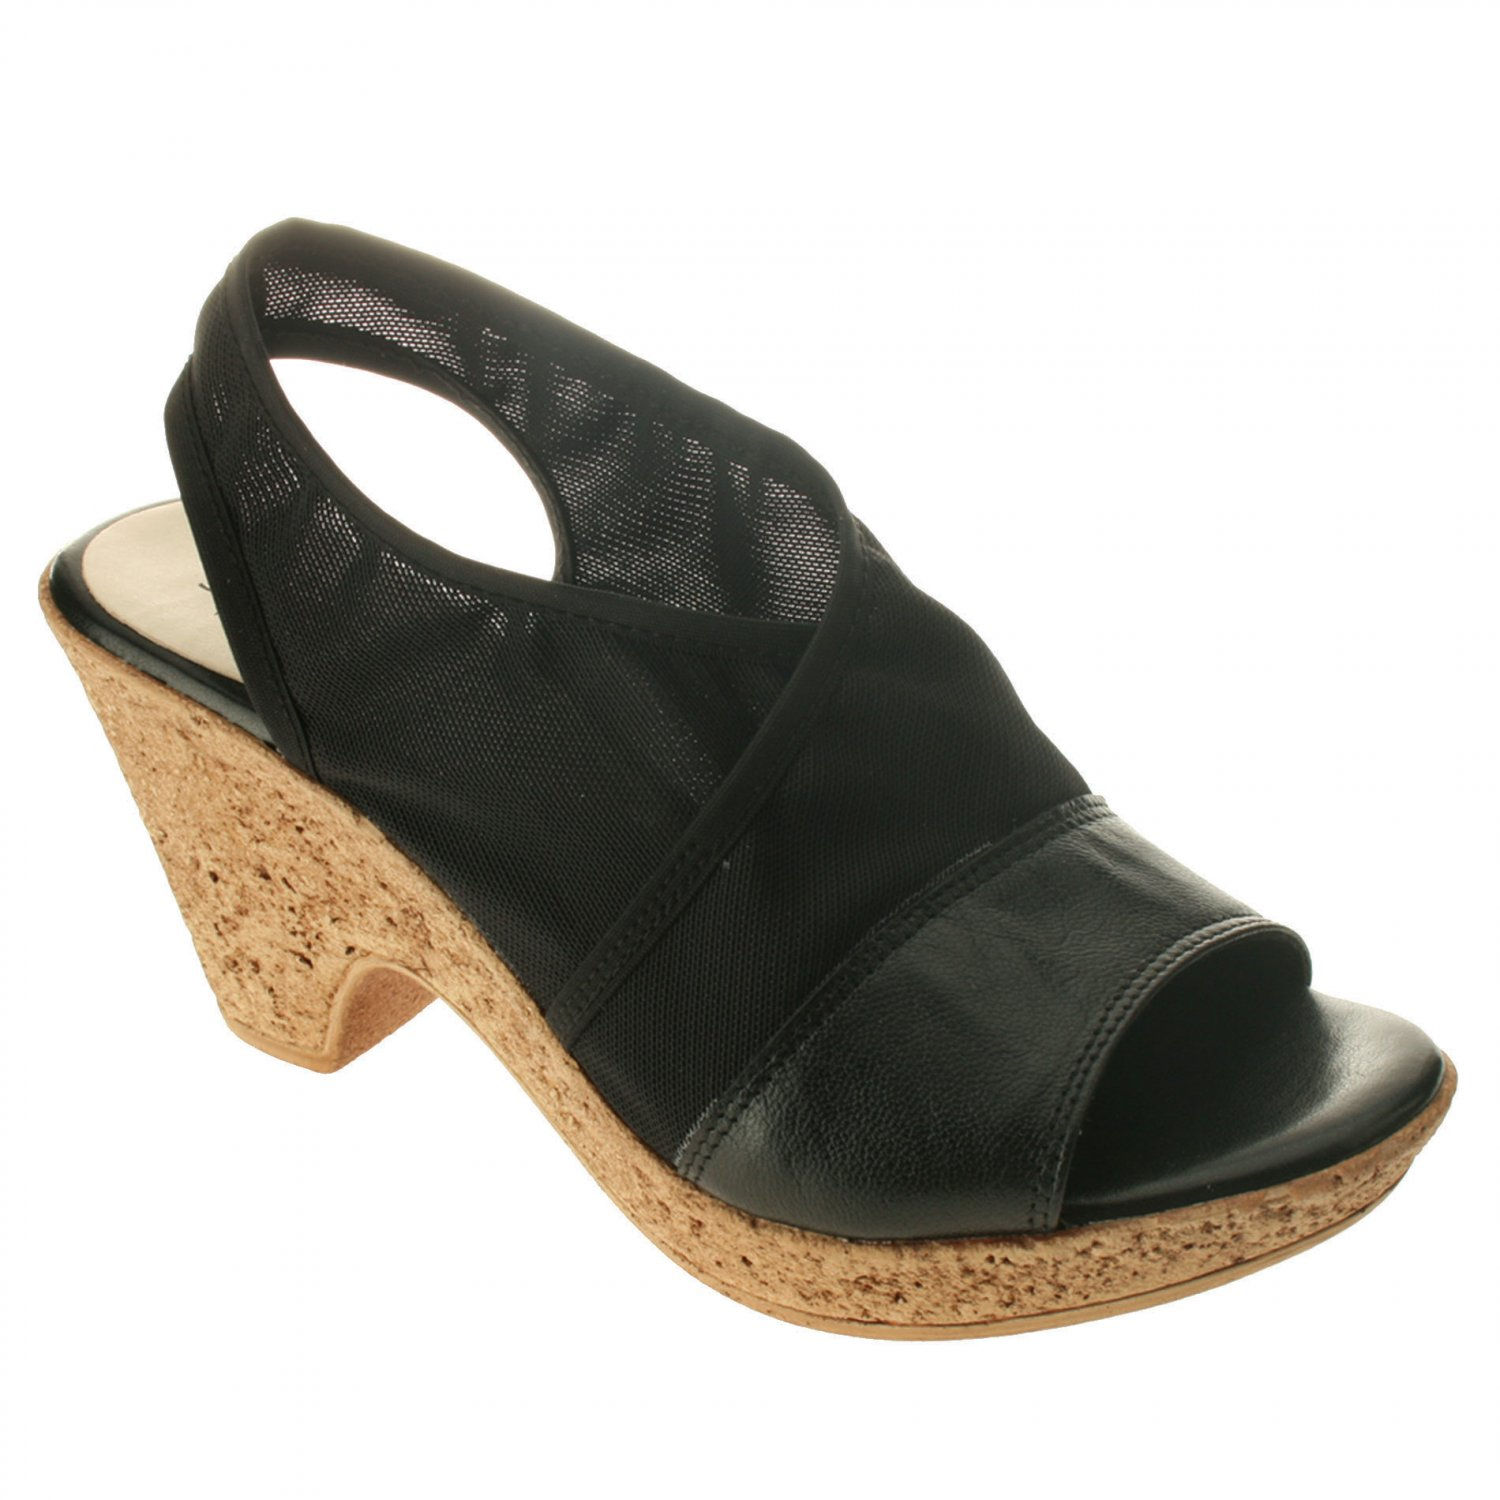 Azura ELECTRA Sandals Shoes All Sizes & Colors $89.99